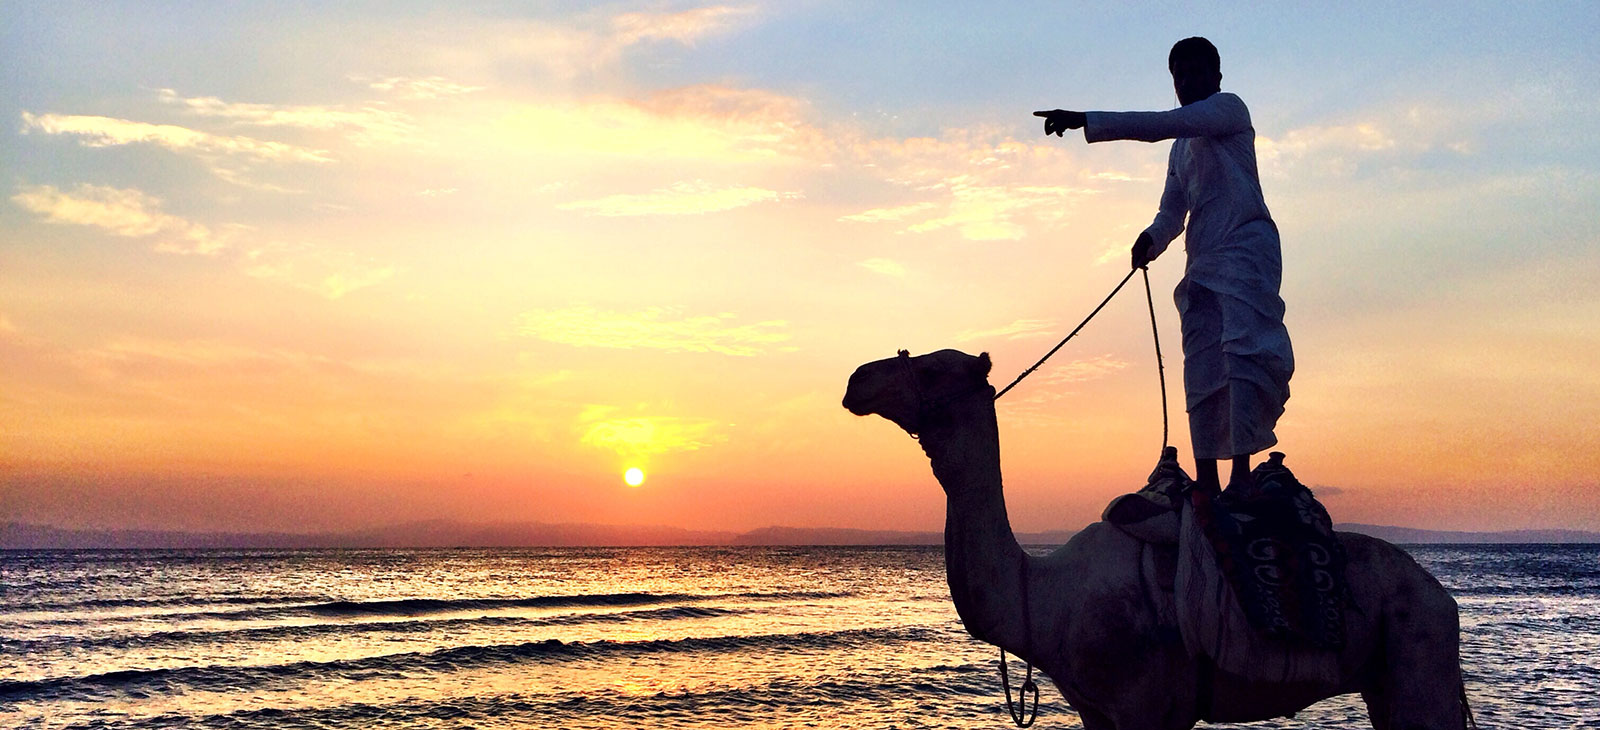 sunrise-dahab-paradise-man-camel-pointing.jpg